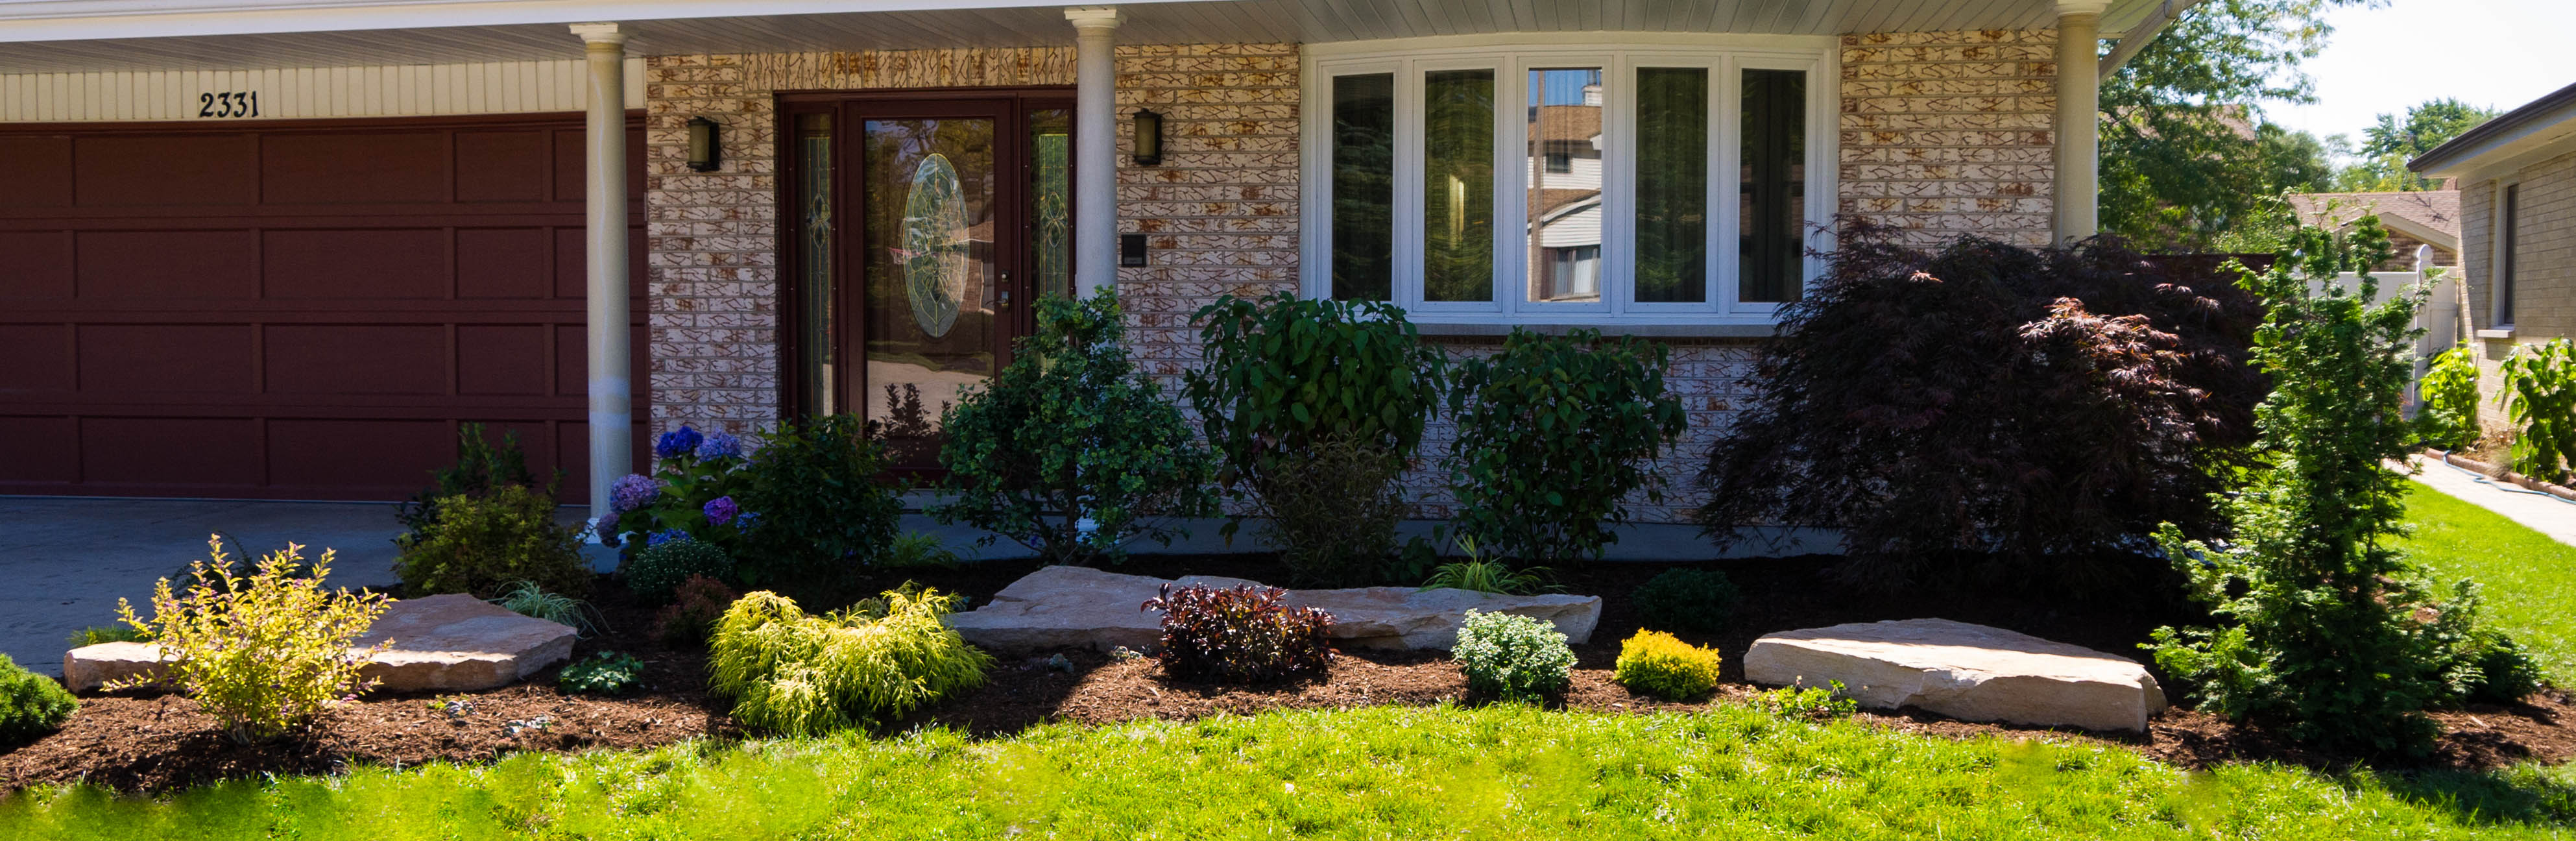 Landscaping Ideas Garage Area : Fall landscaping it s still not too late seasons painting